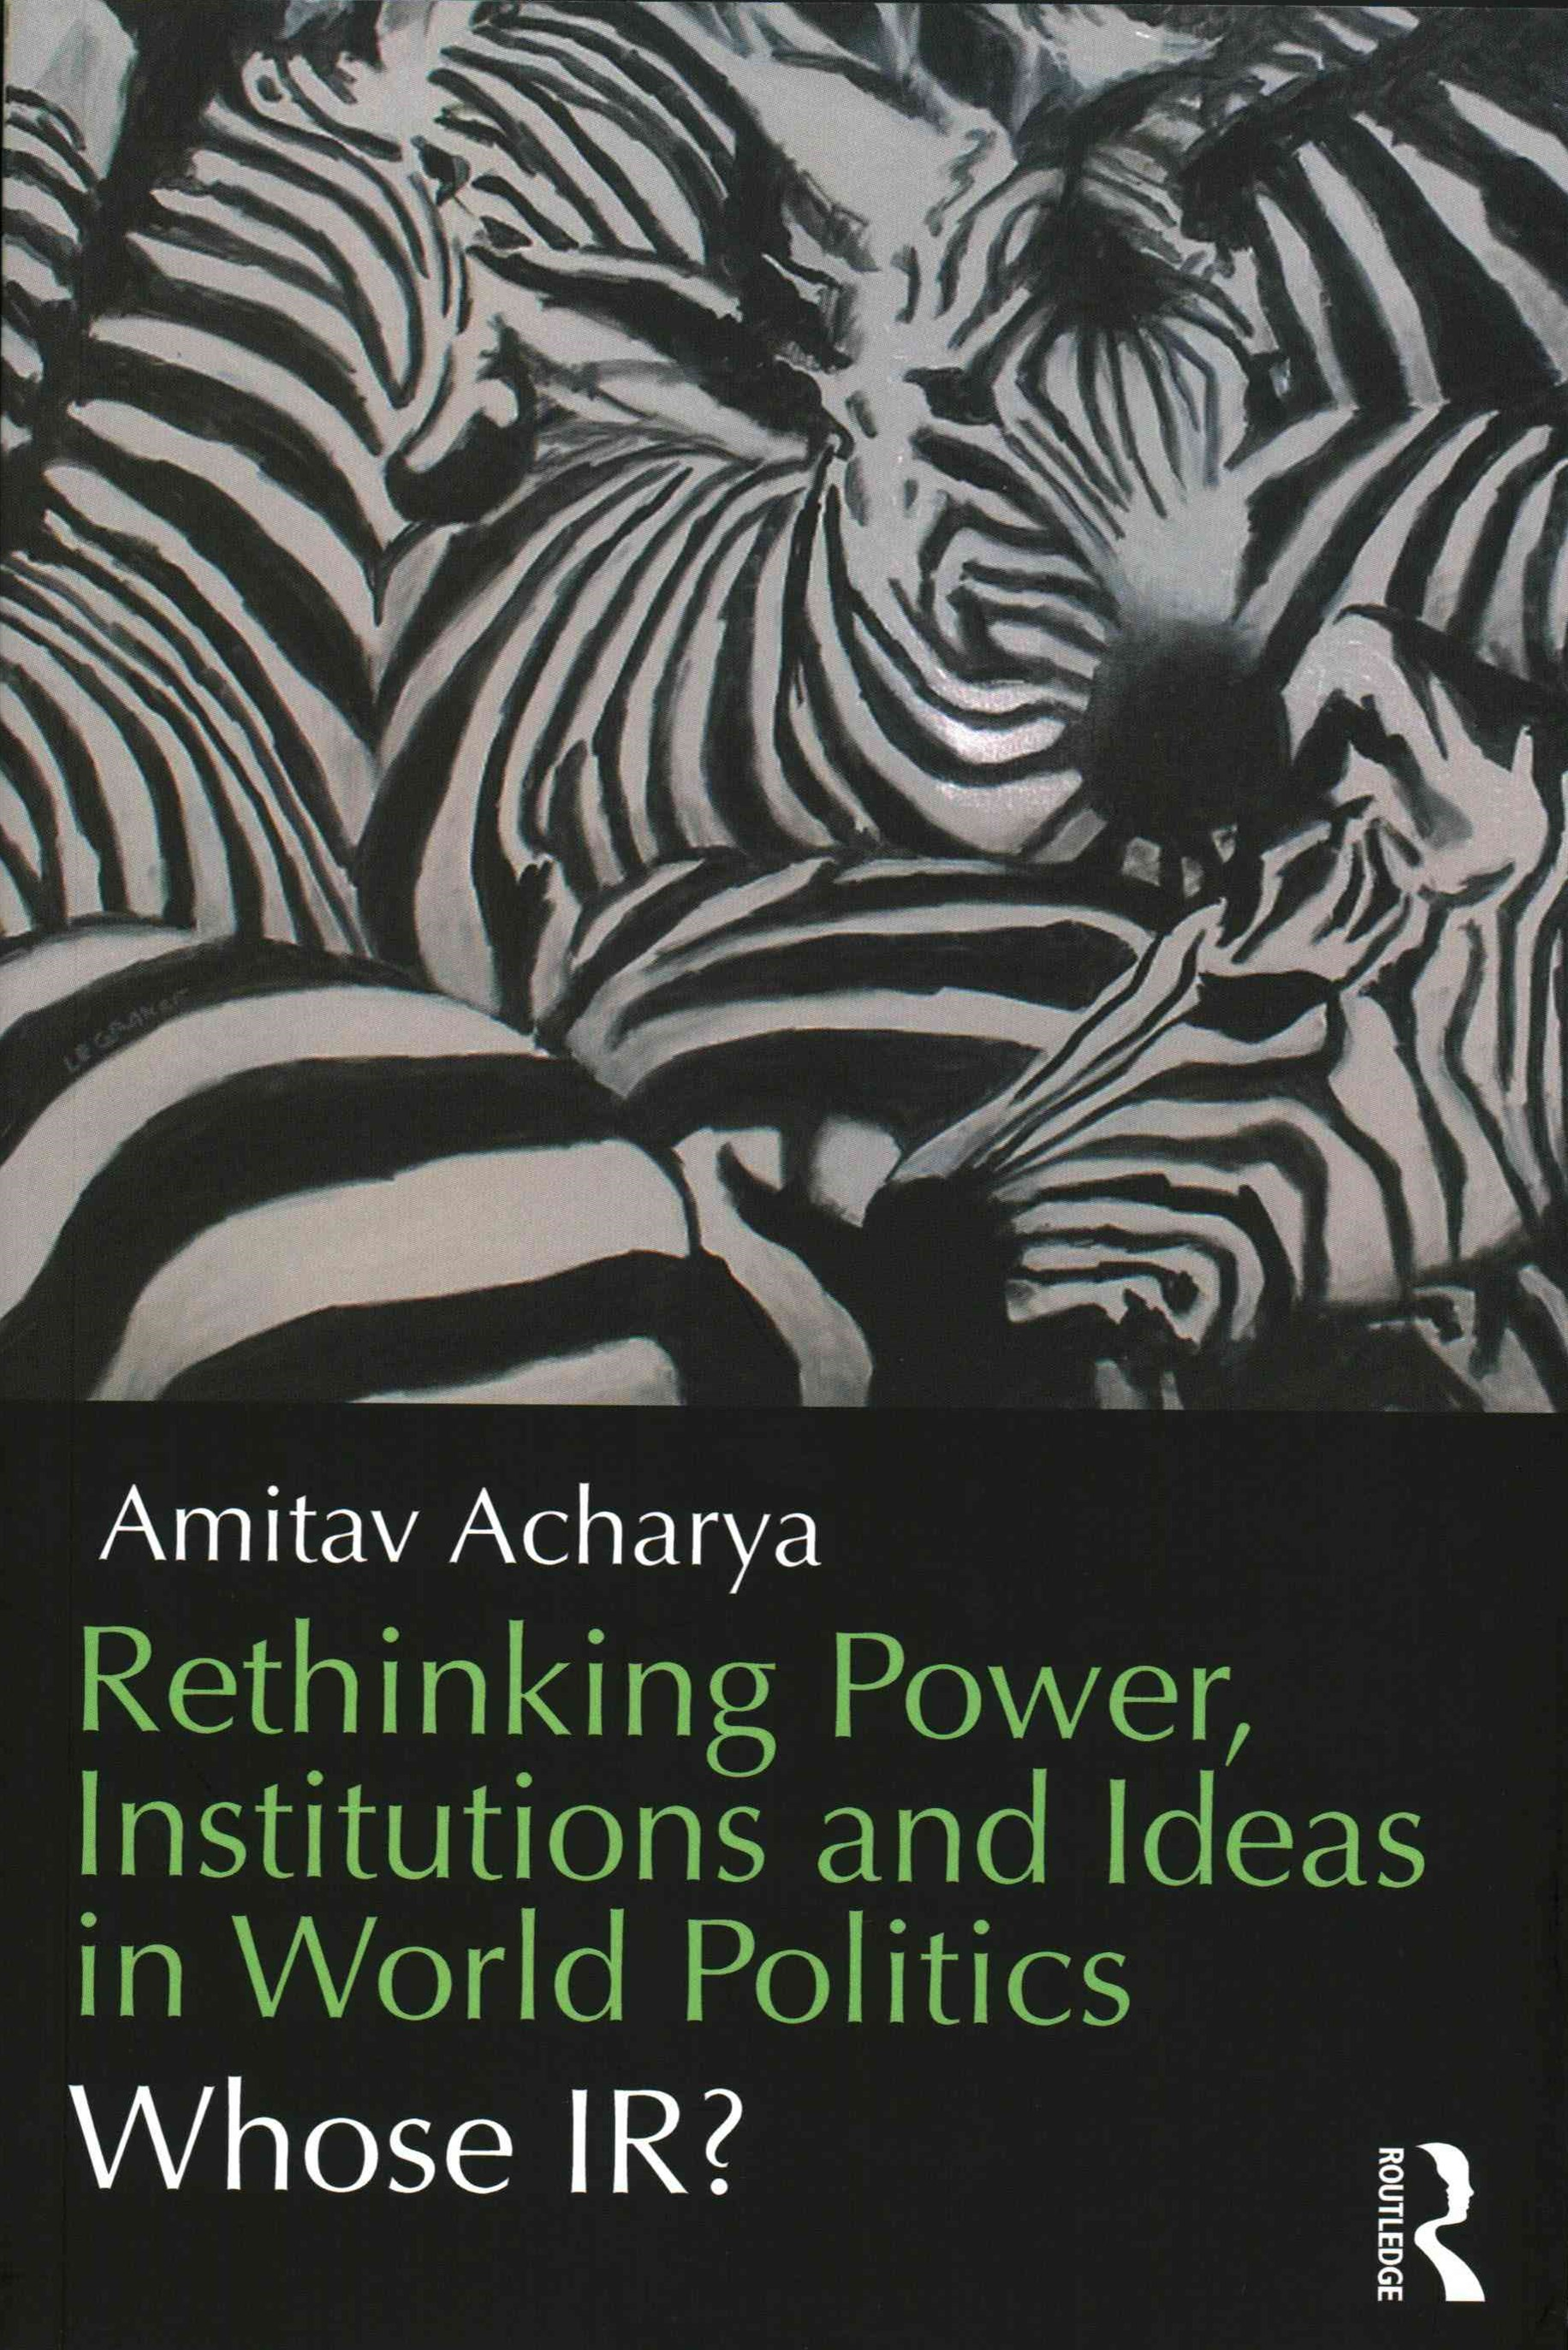 Rethinking Power, Institutions and Ideas in World Politics